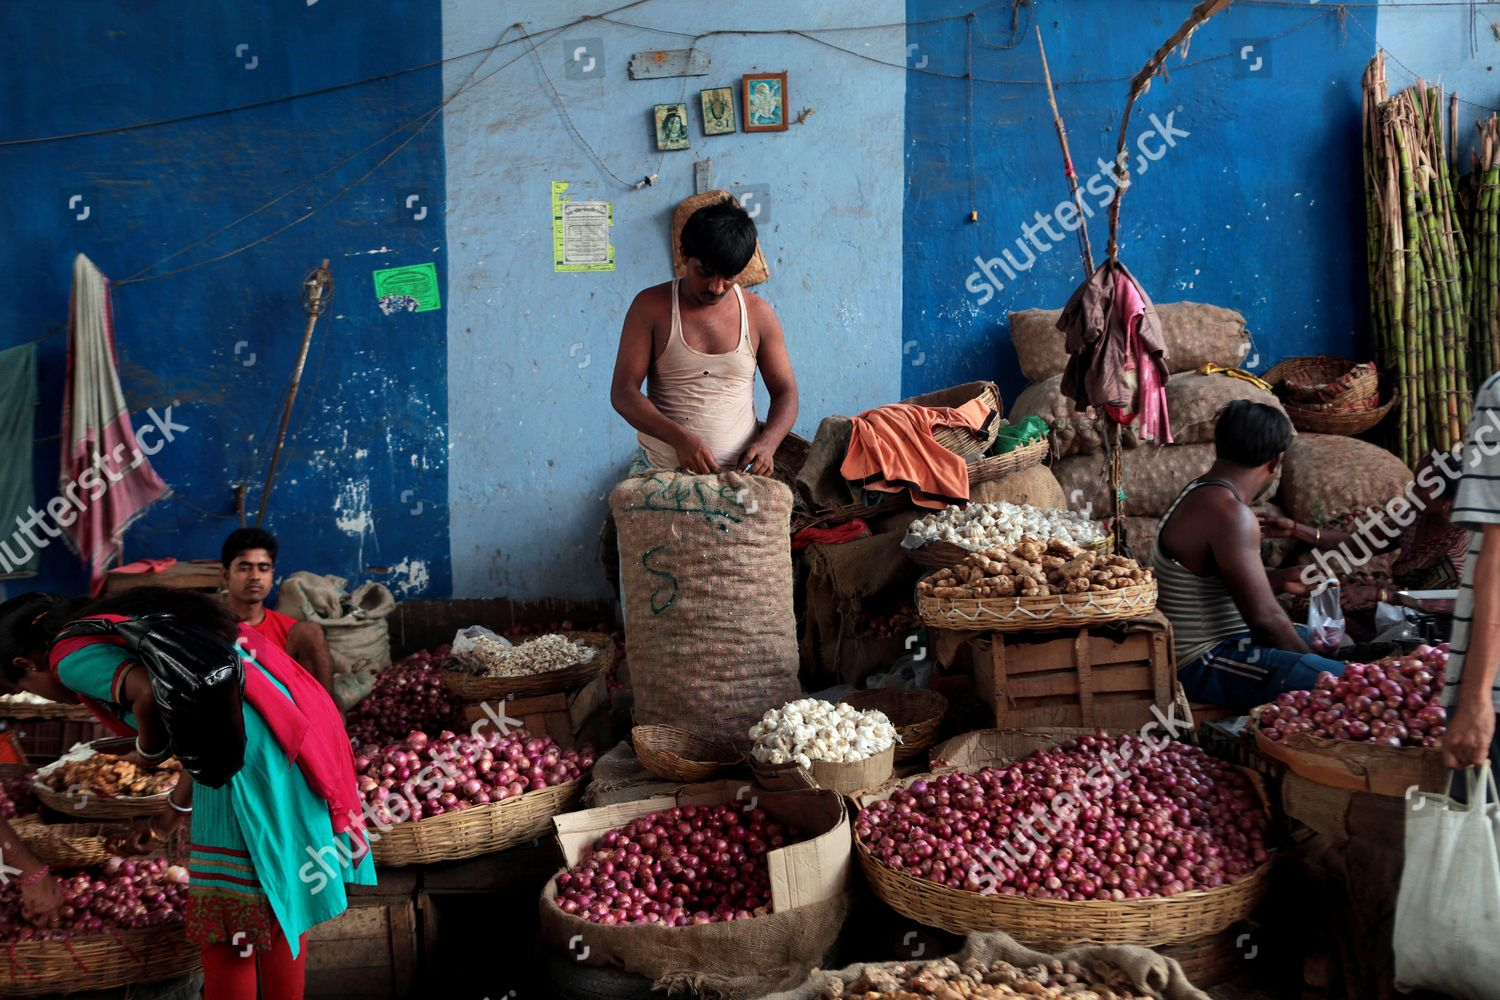 Indian Onion Vendor c Sells Onions Wholesale Editorial Stock